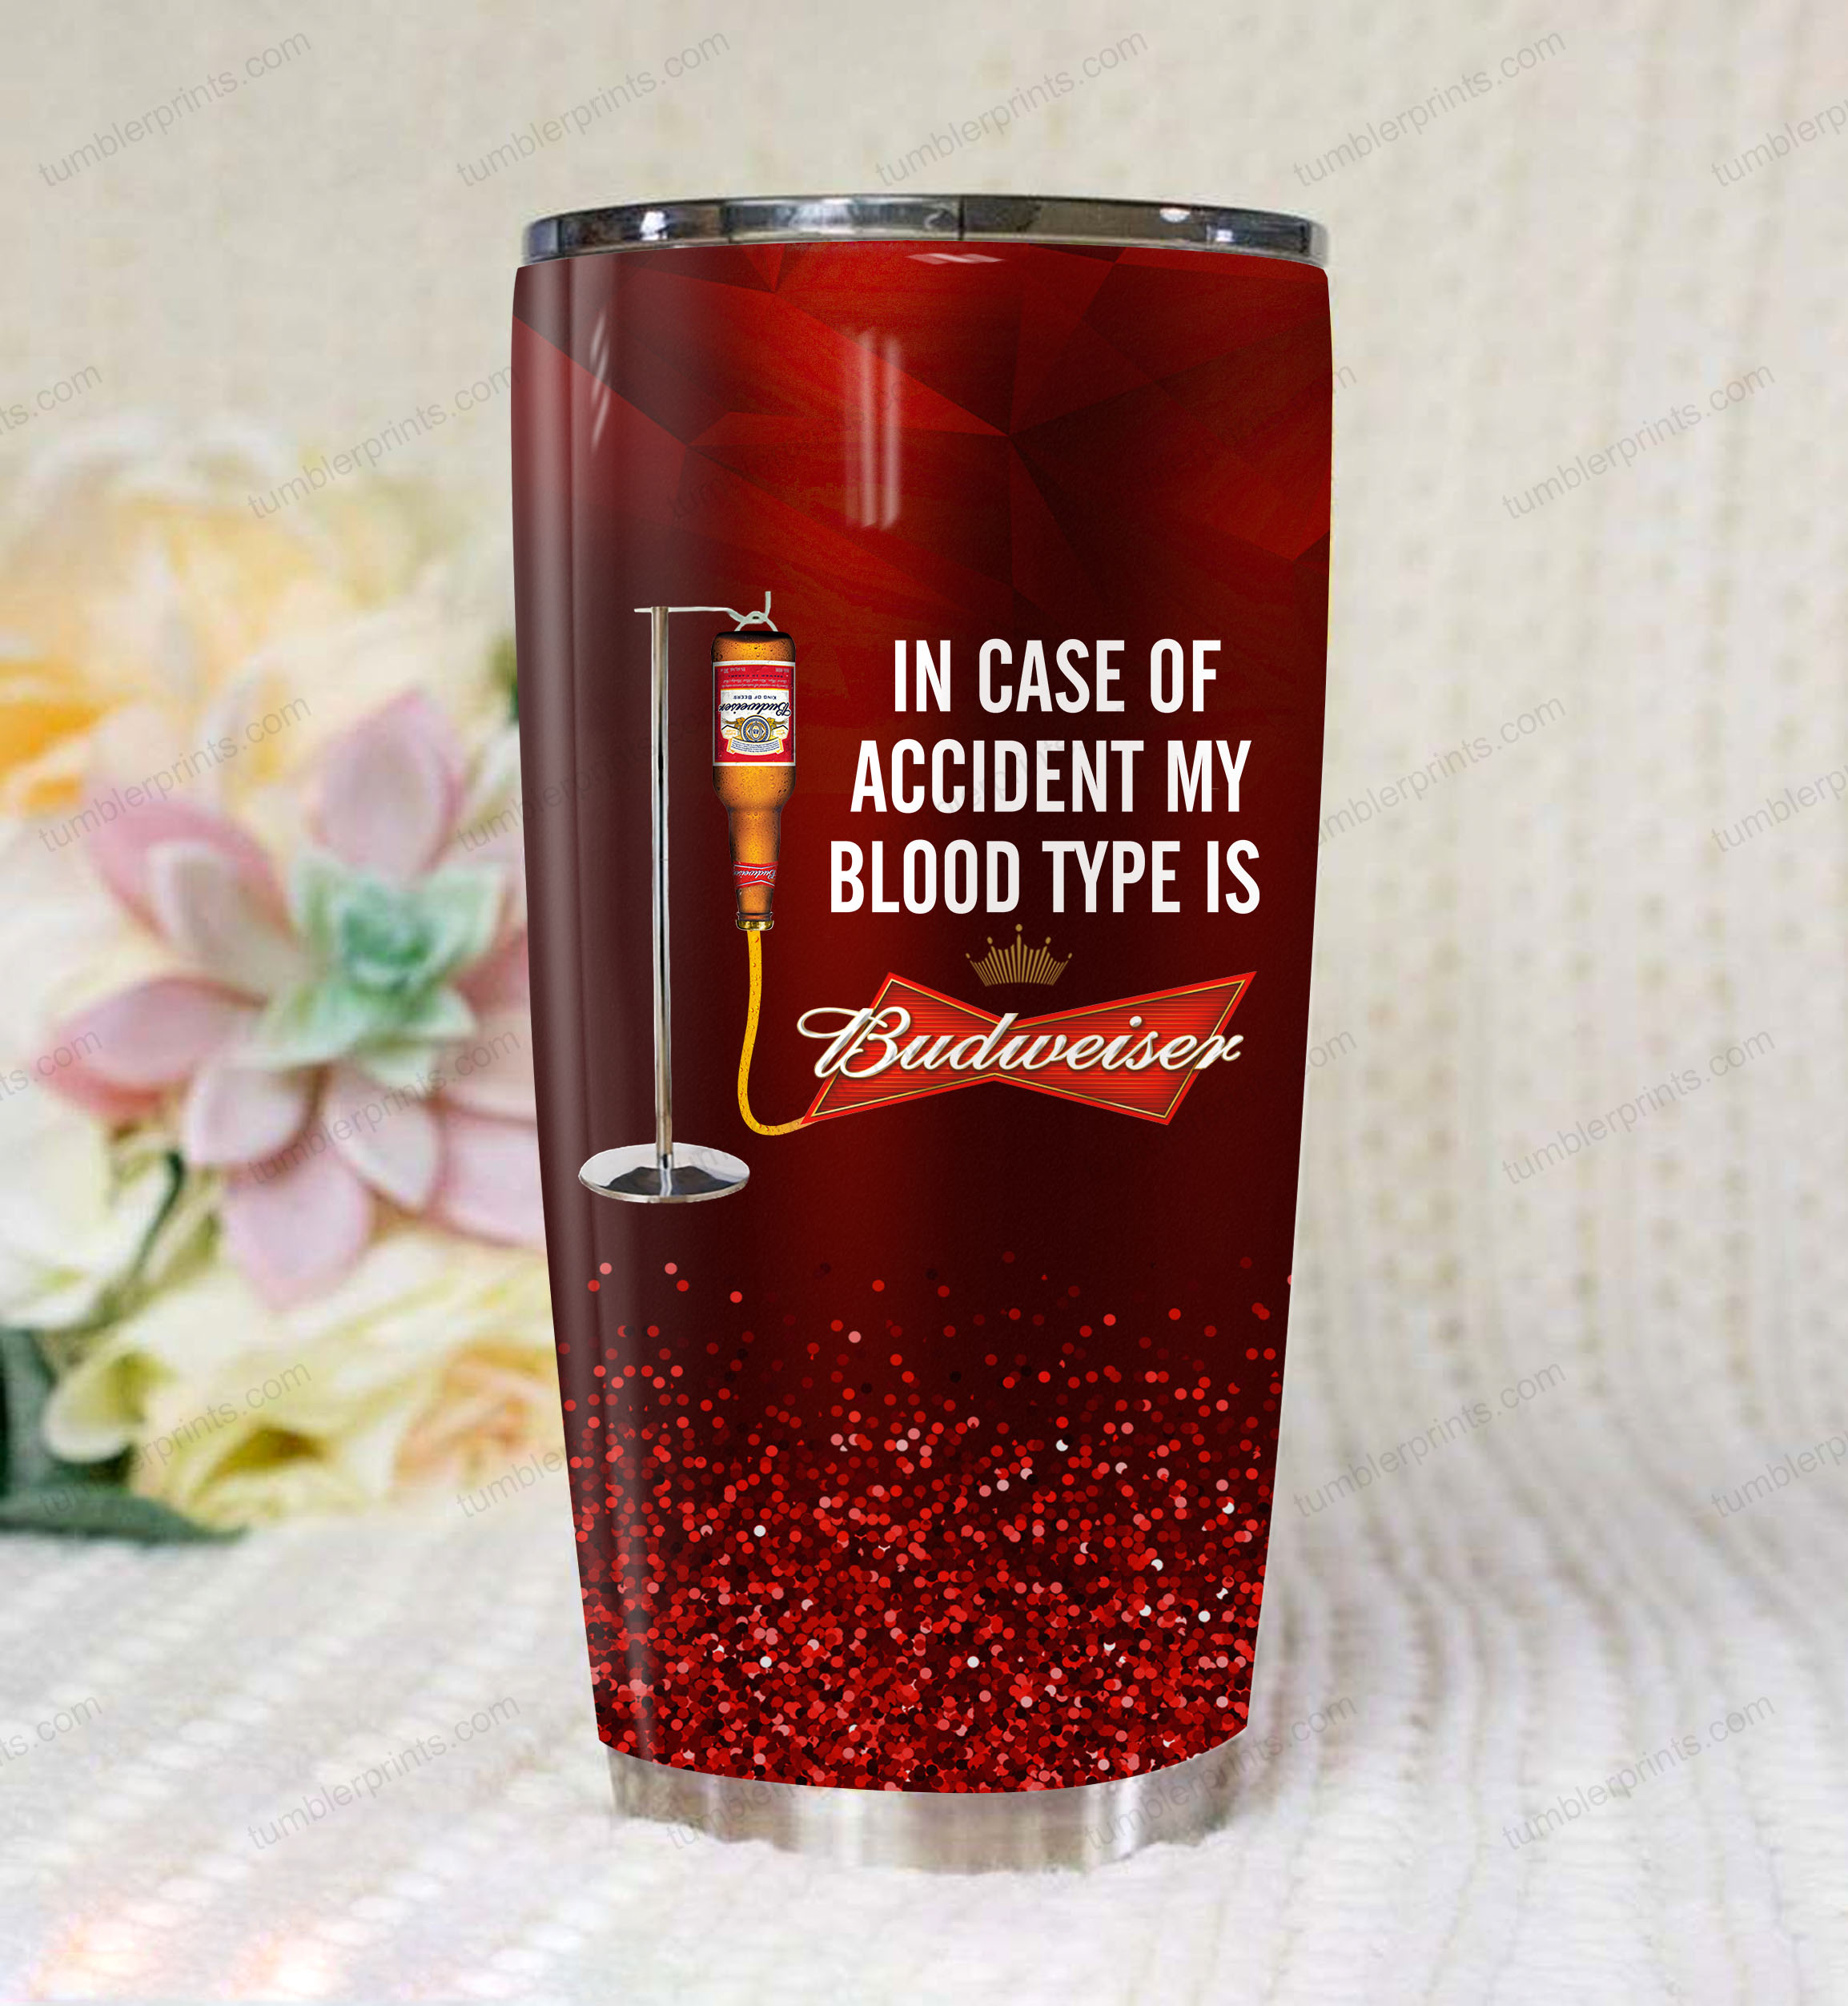 In case of an accident my blood type is budweiser full printing tumbler 1